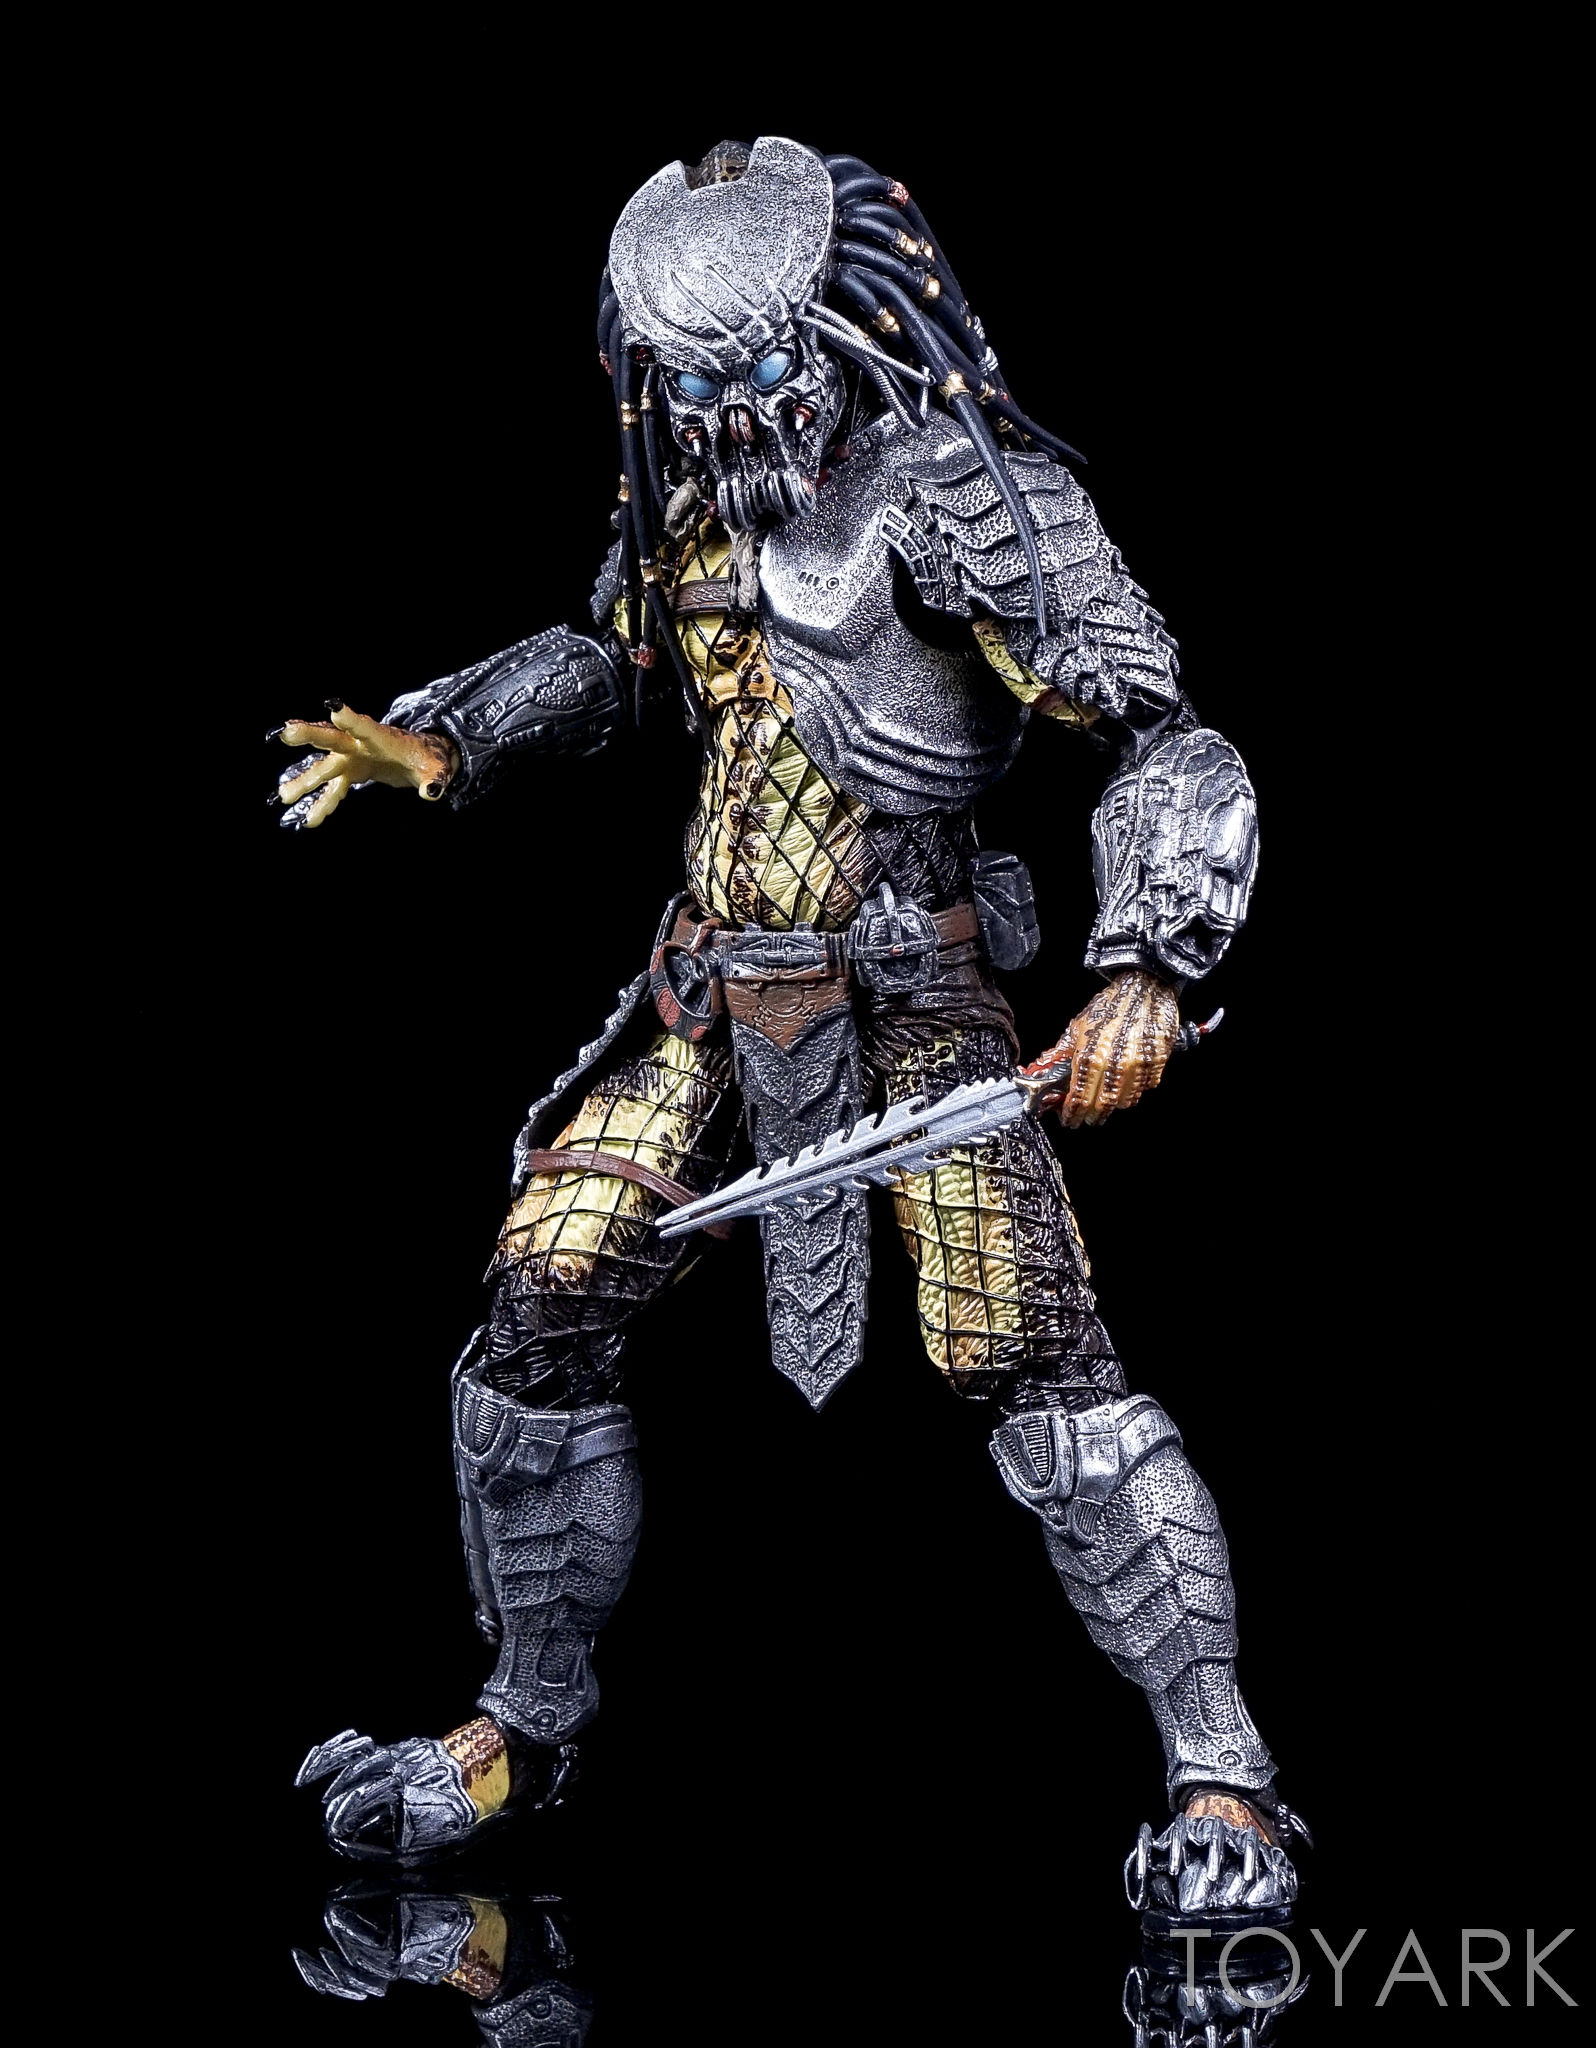 http://news.toyark.com/wp-content/uploads/sites/4/2016/10/NECA-AvP-Rivalry-Reborn-Set-041.jpg